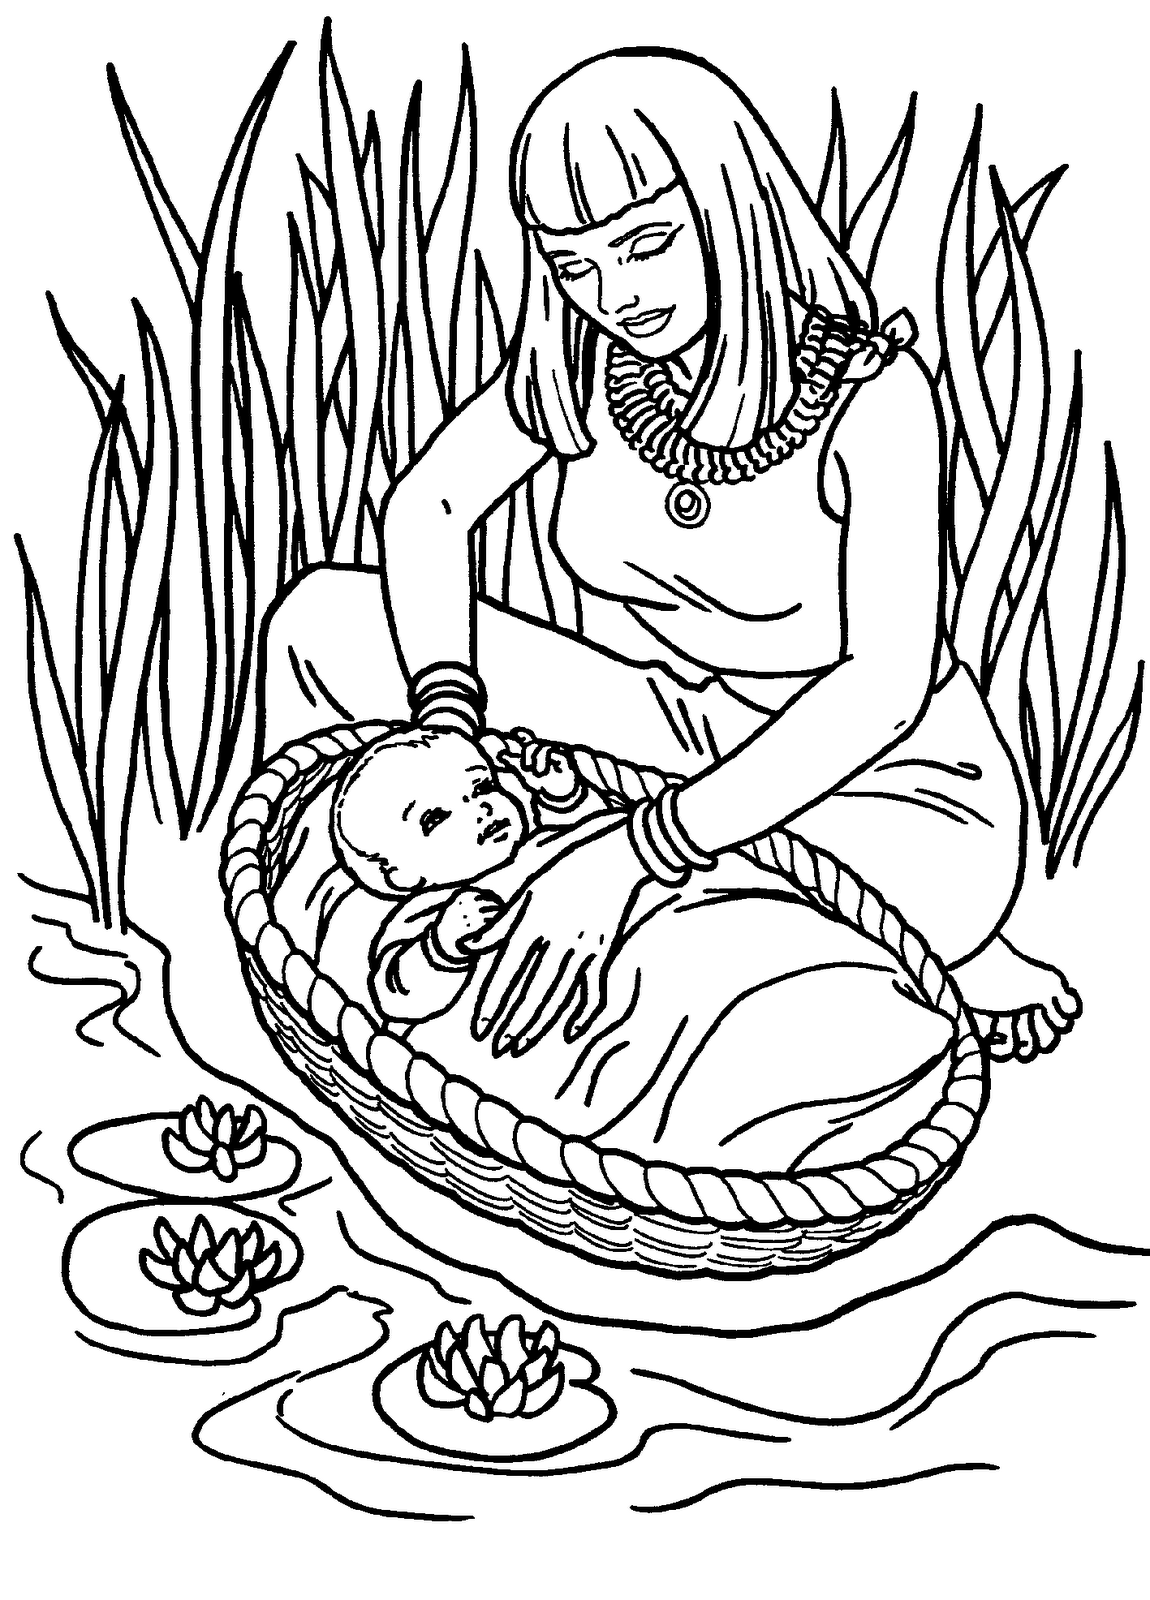 Coloring Pages Crossing The Red Sea - Coloring Home